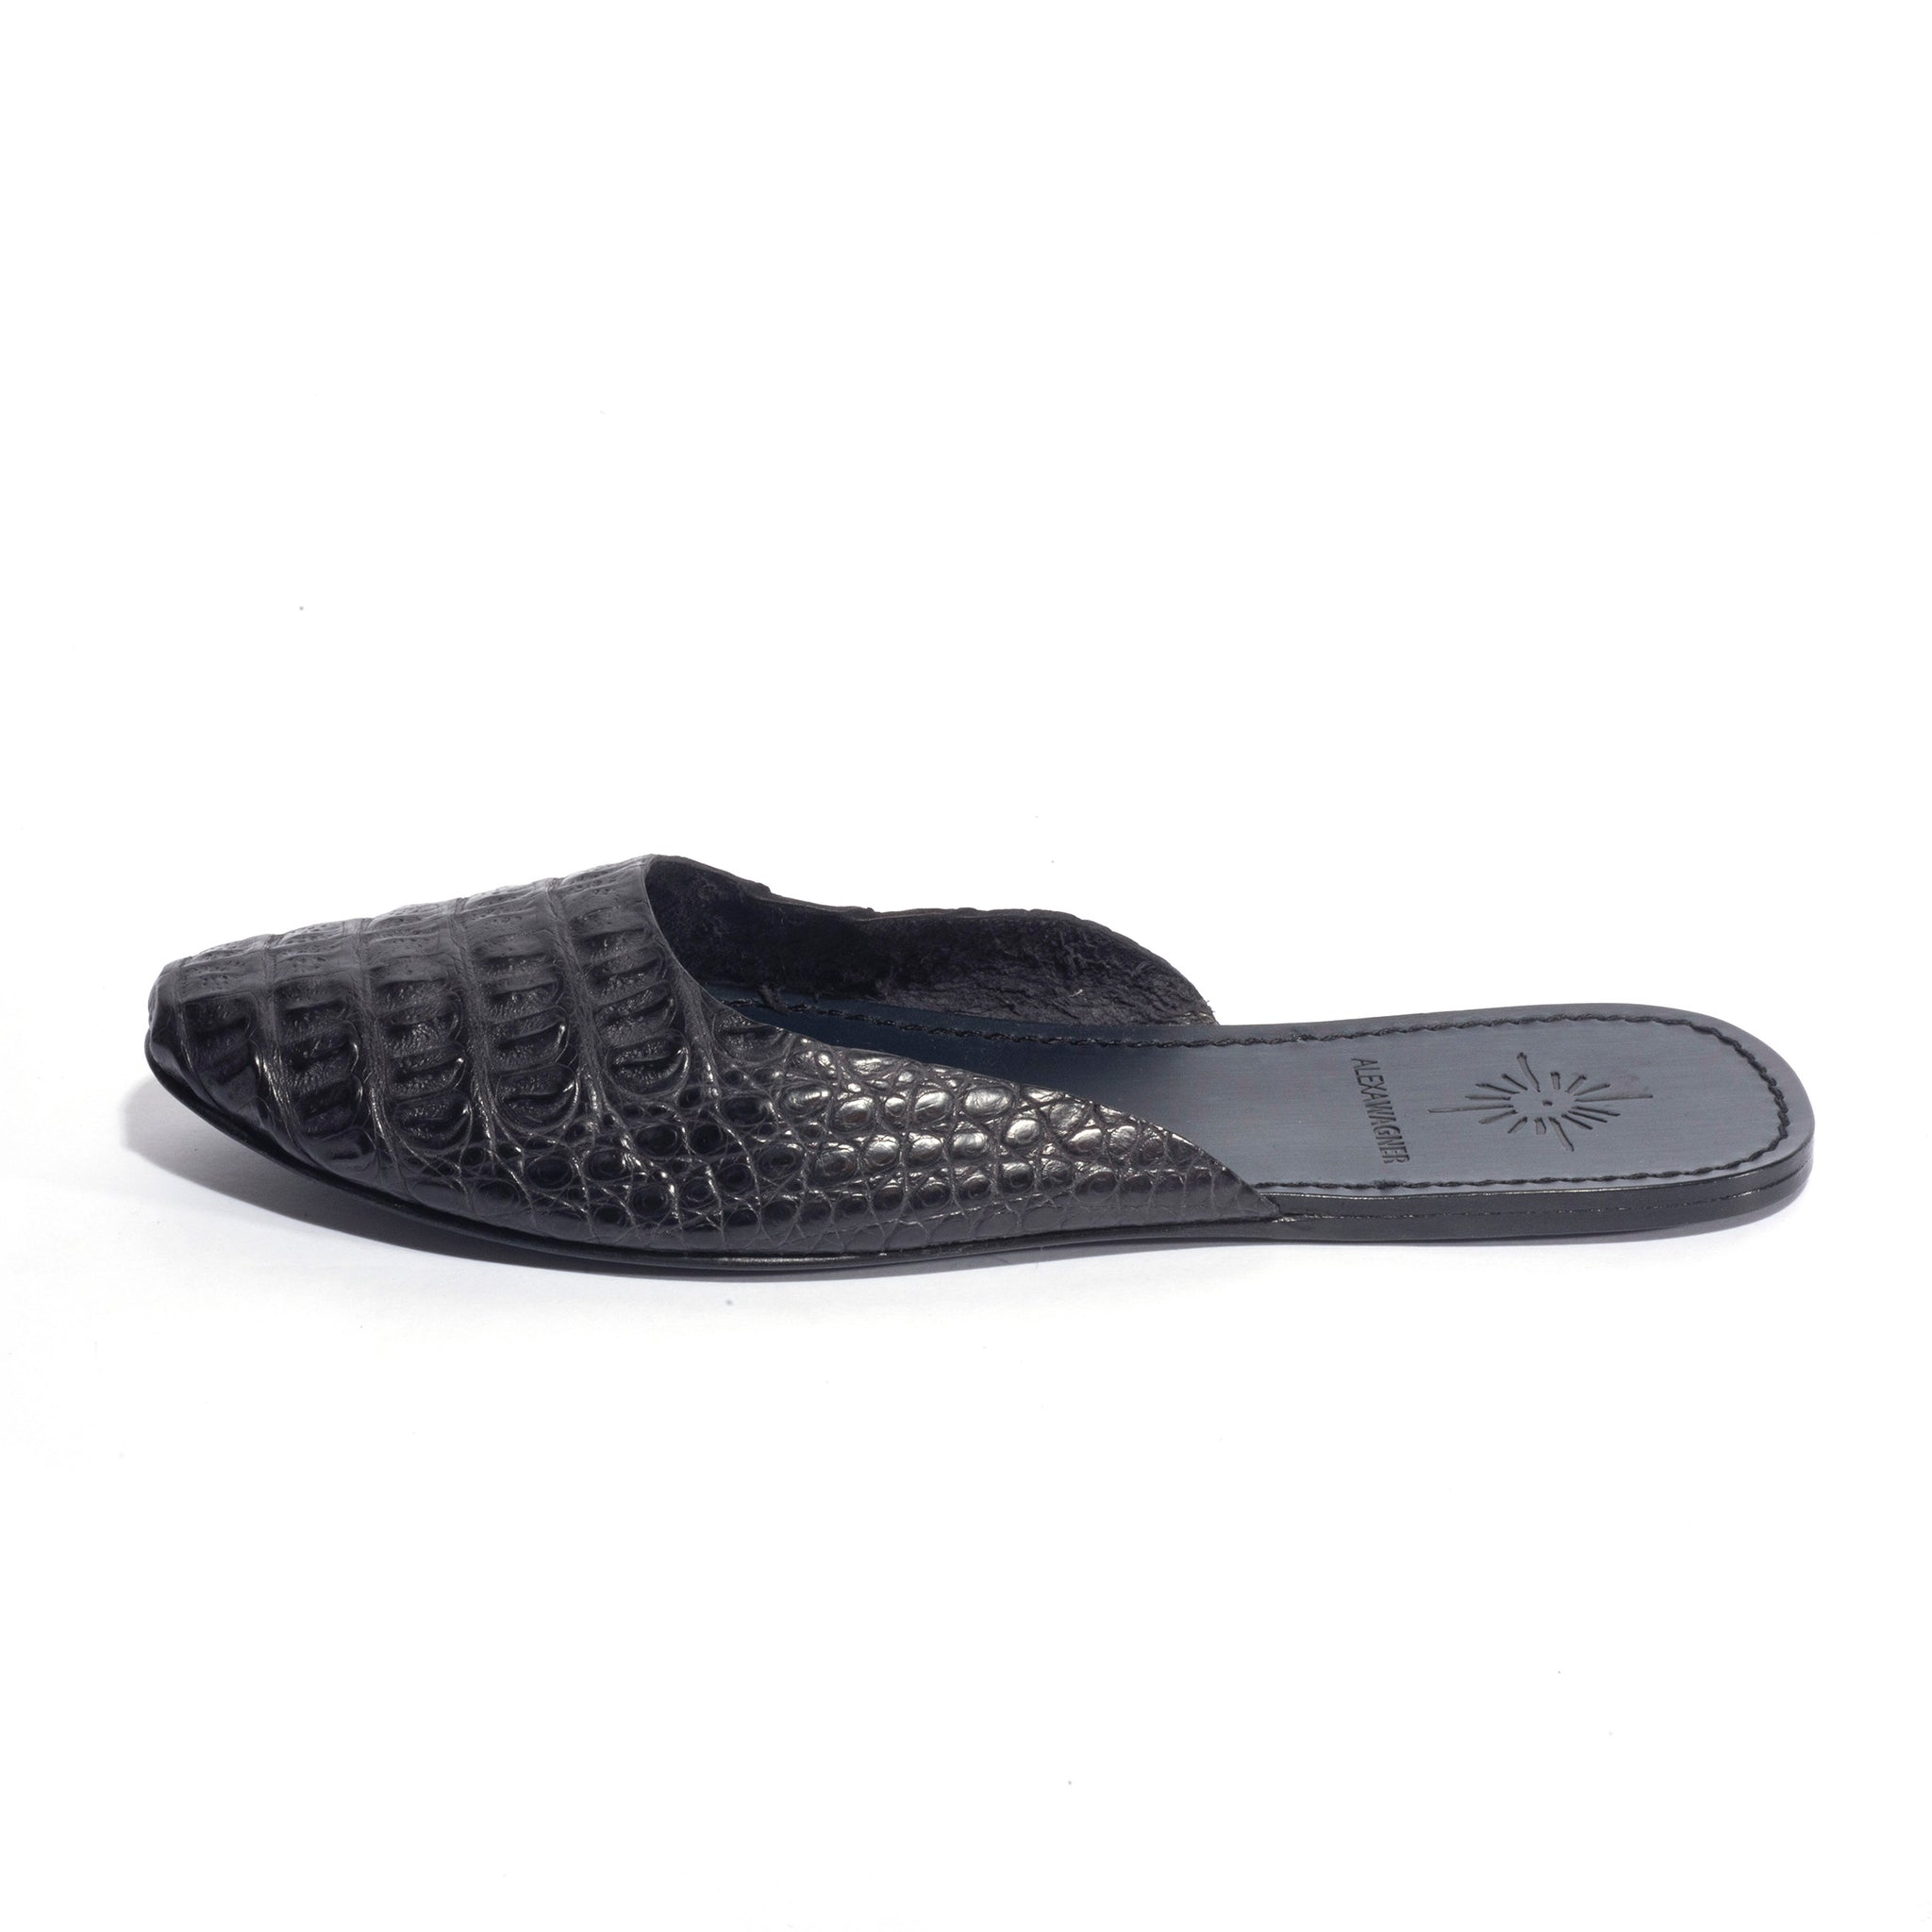 Shine Easy dark grey croco slides